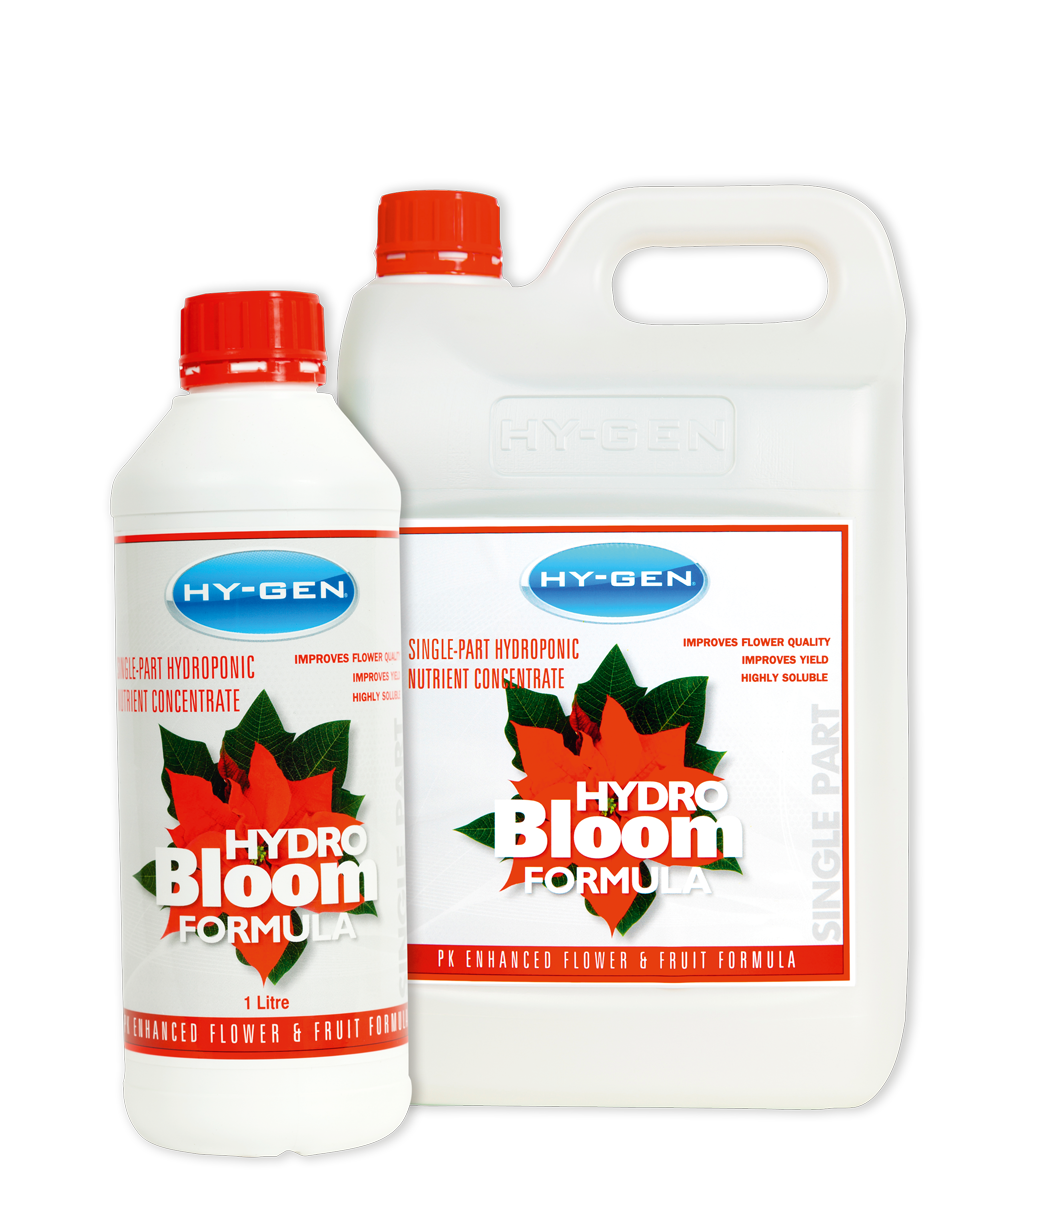 hy-gen-hydro-bloom-single-part-1l-5l-group-de